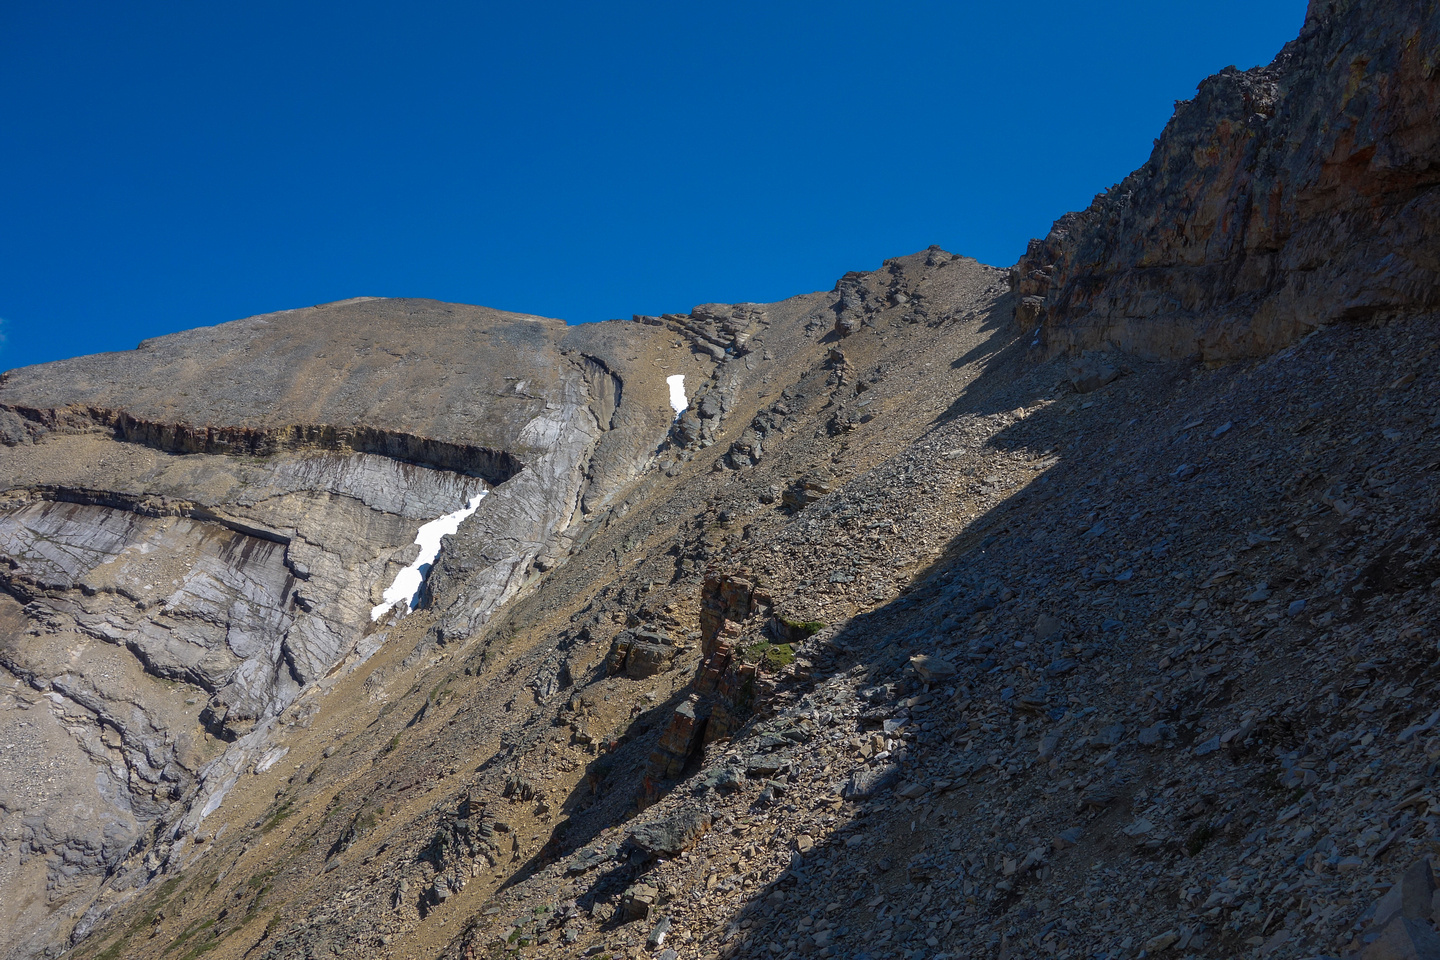 Looking back at a particularly large and long scree ledge I followed from just before getting down to the col on descent.